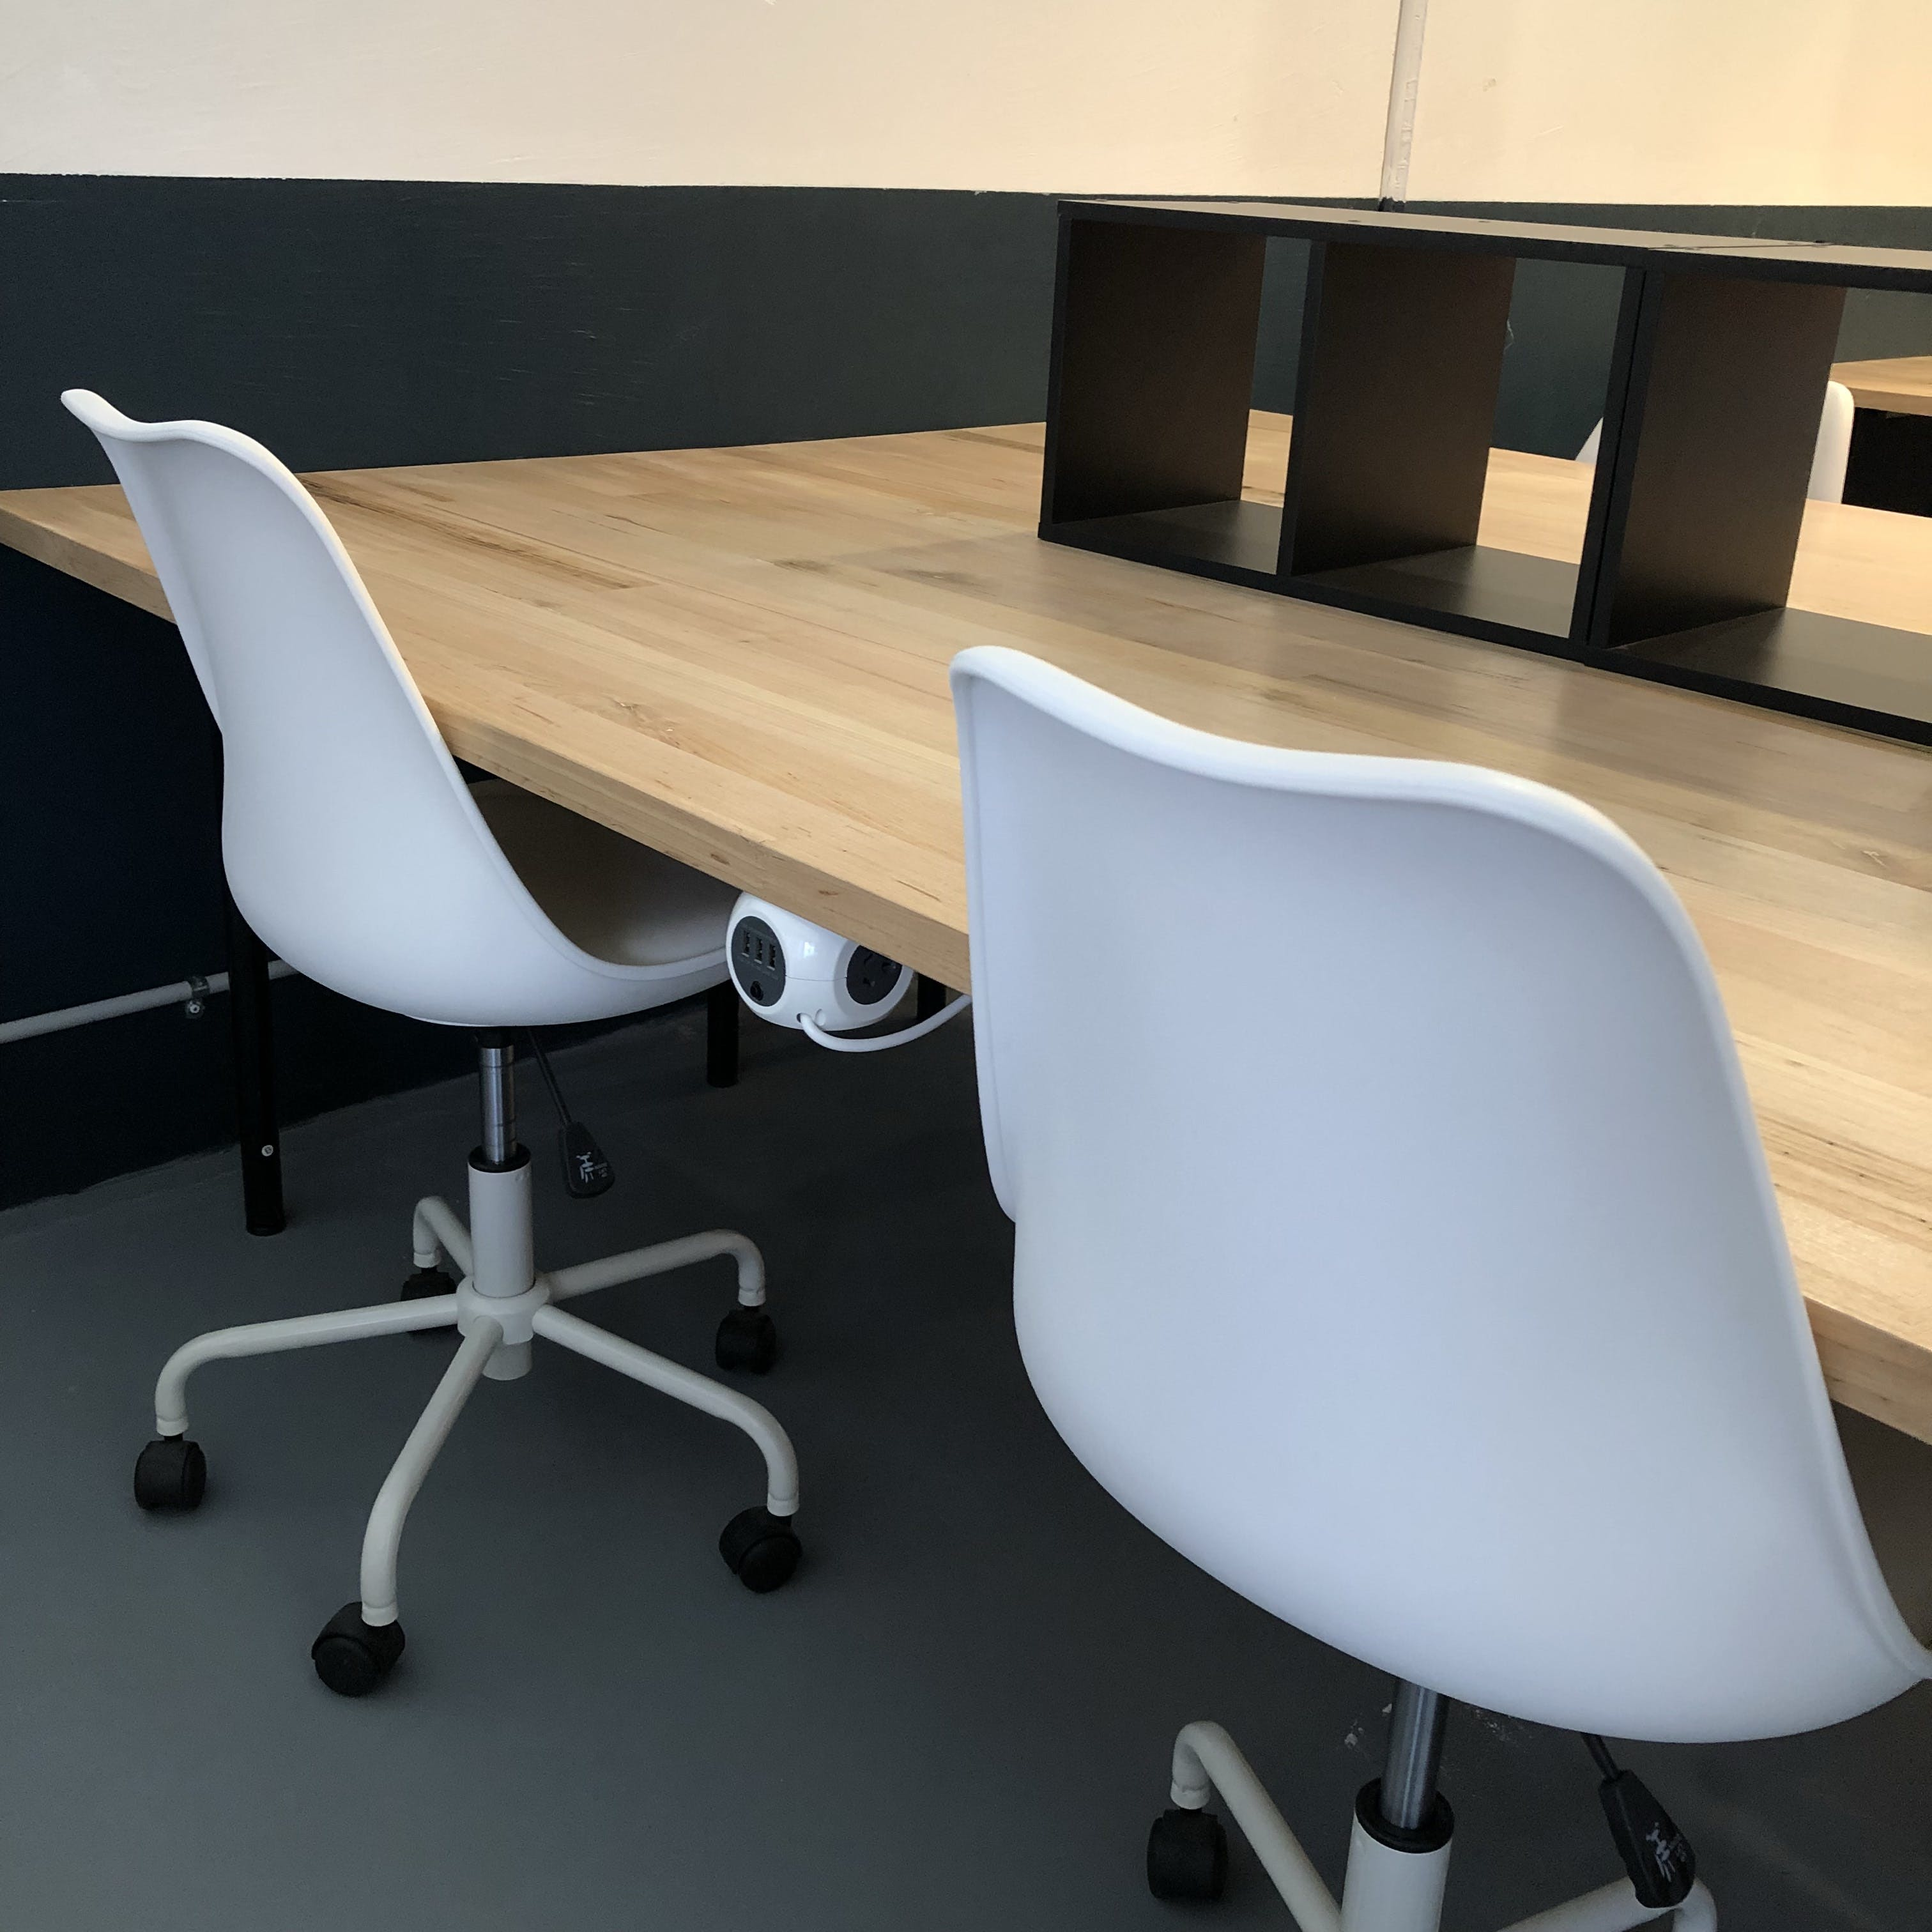 Student Desk, hot desk at Bridge Coworking Meeting and Event Space Geelong, image 1